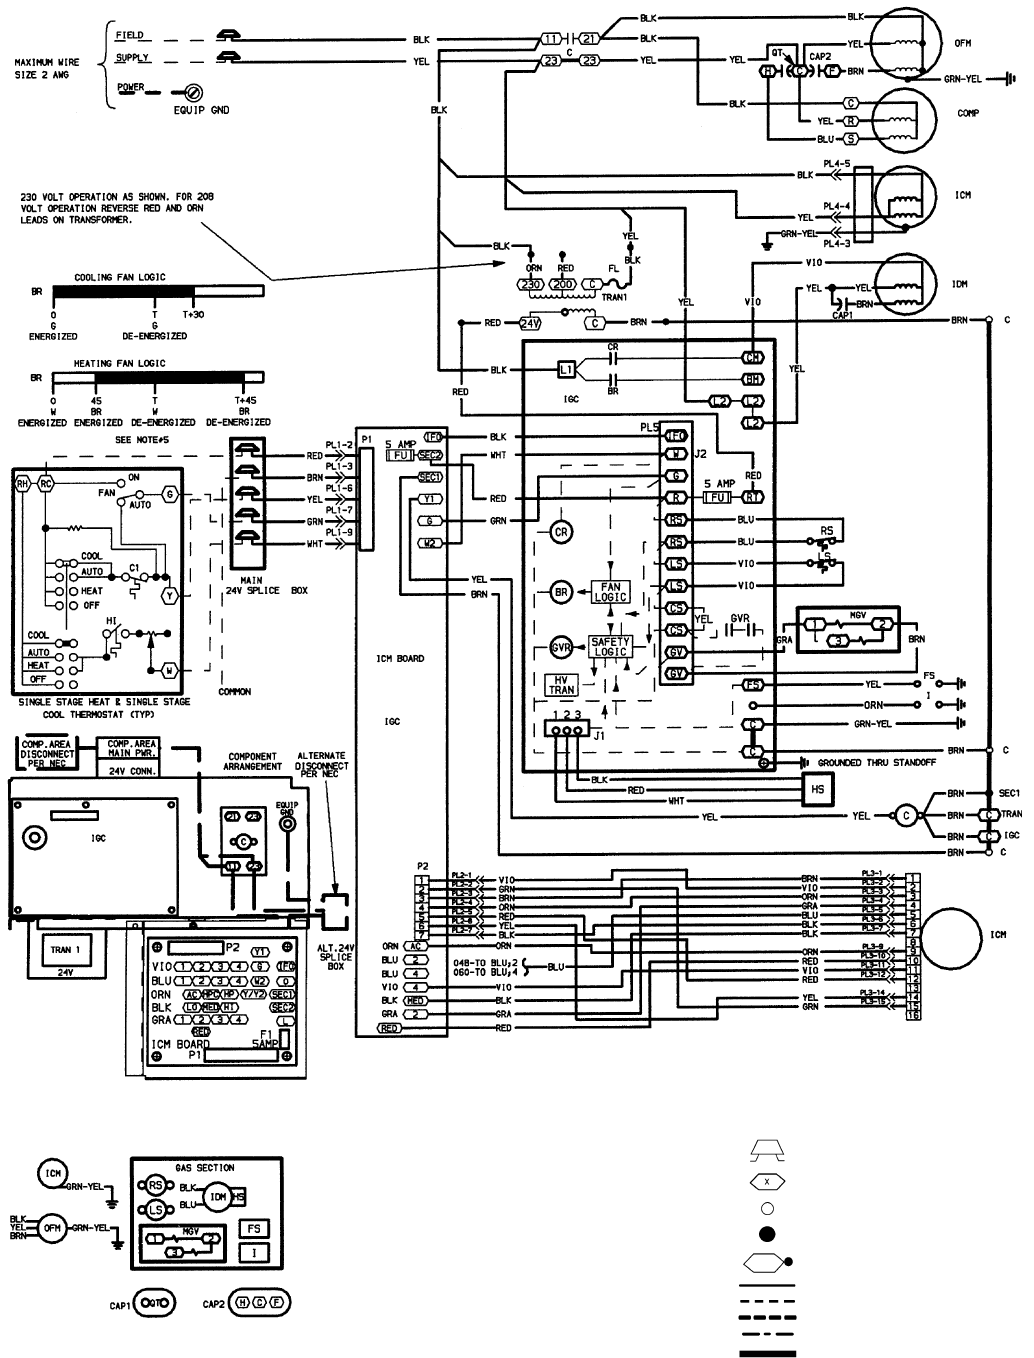 Century Motors 460 Volt 3 Phase Wiring Diagram 460 Volt